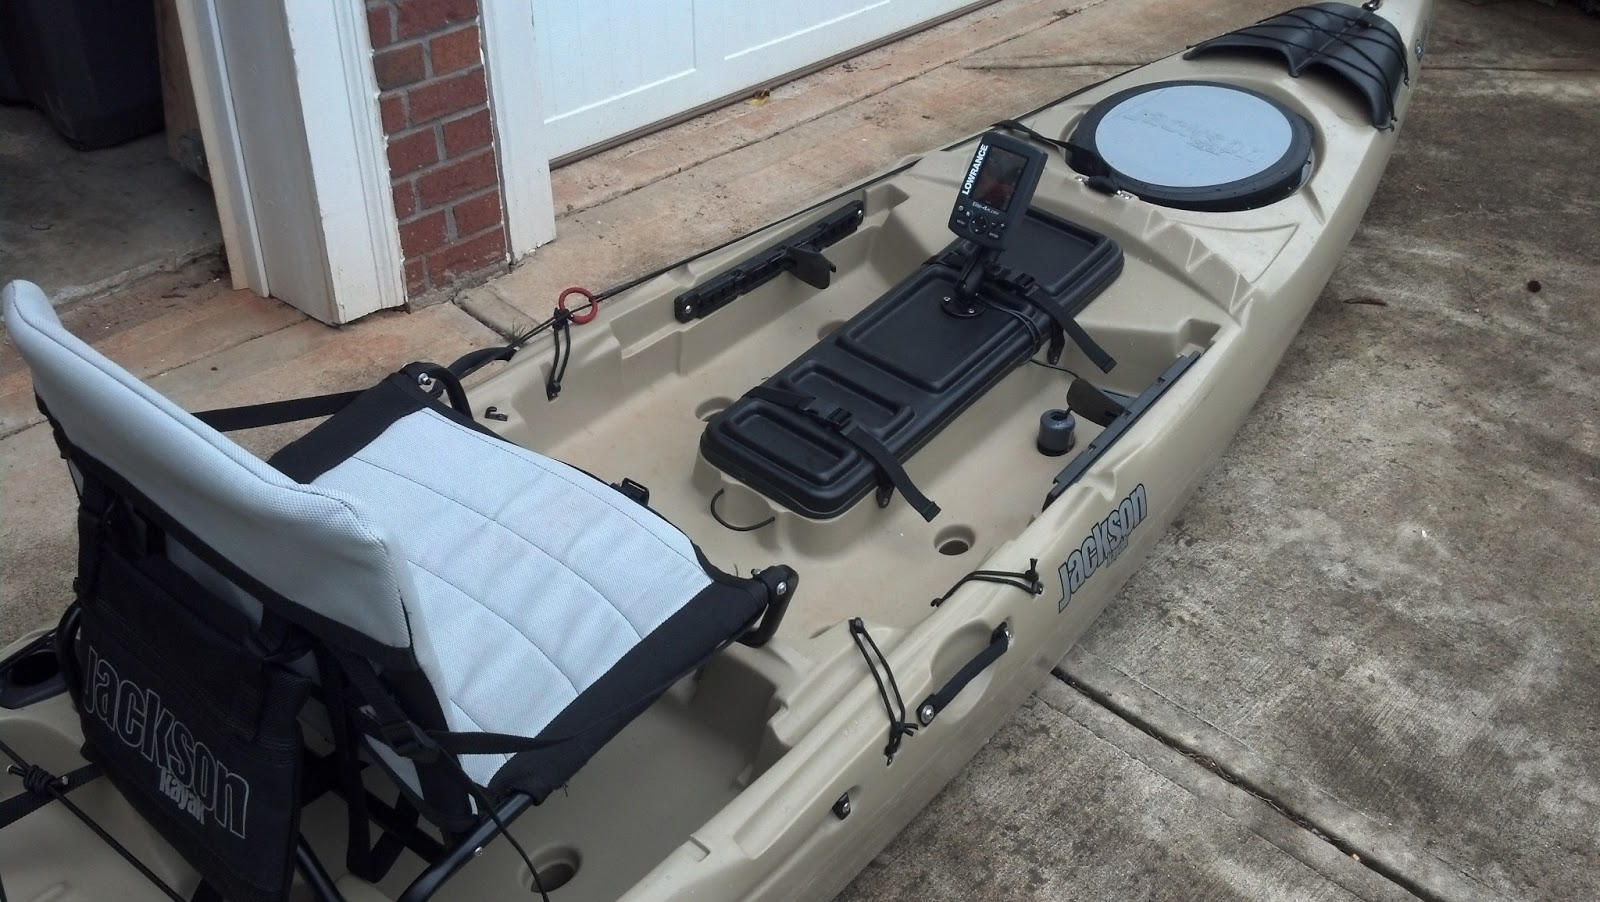 Georgia kayak fishing installing a fish finder on a kayak for Fish finder on kayak